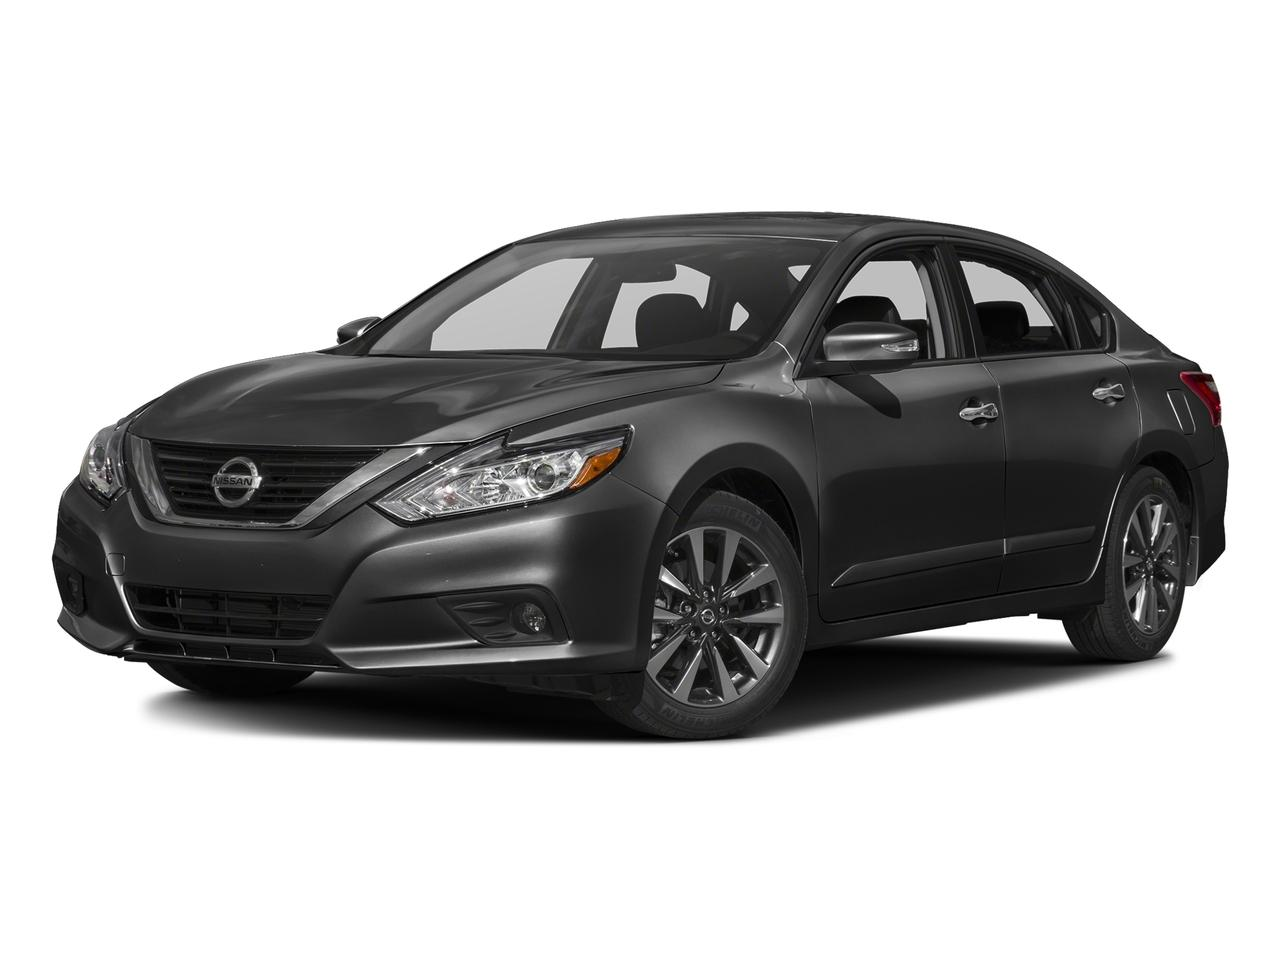 2016 Nissan Altima Vehicle Photo in VINCENNES, IN 47591-5519